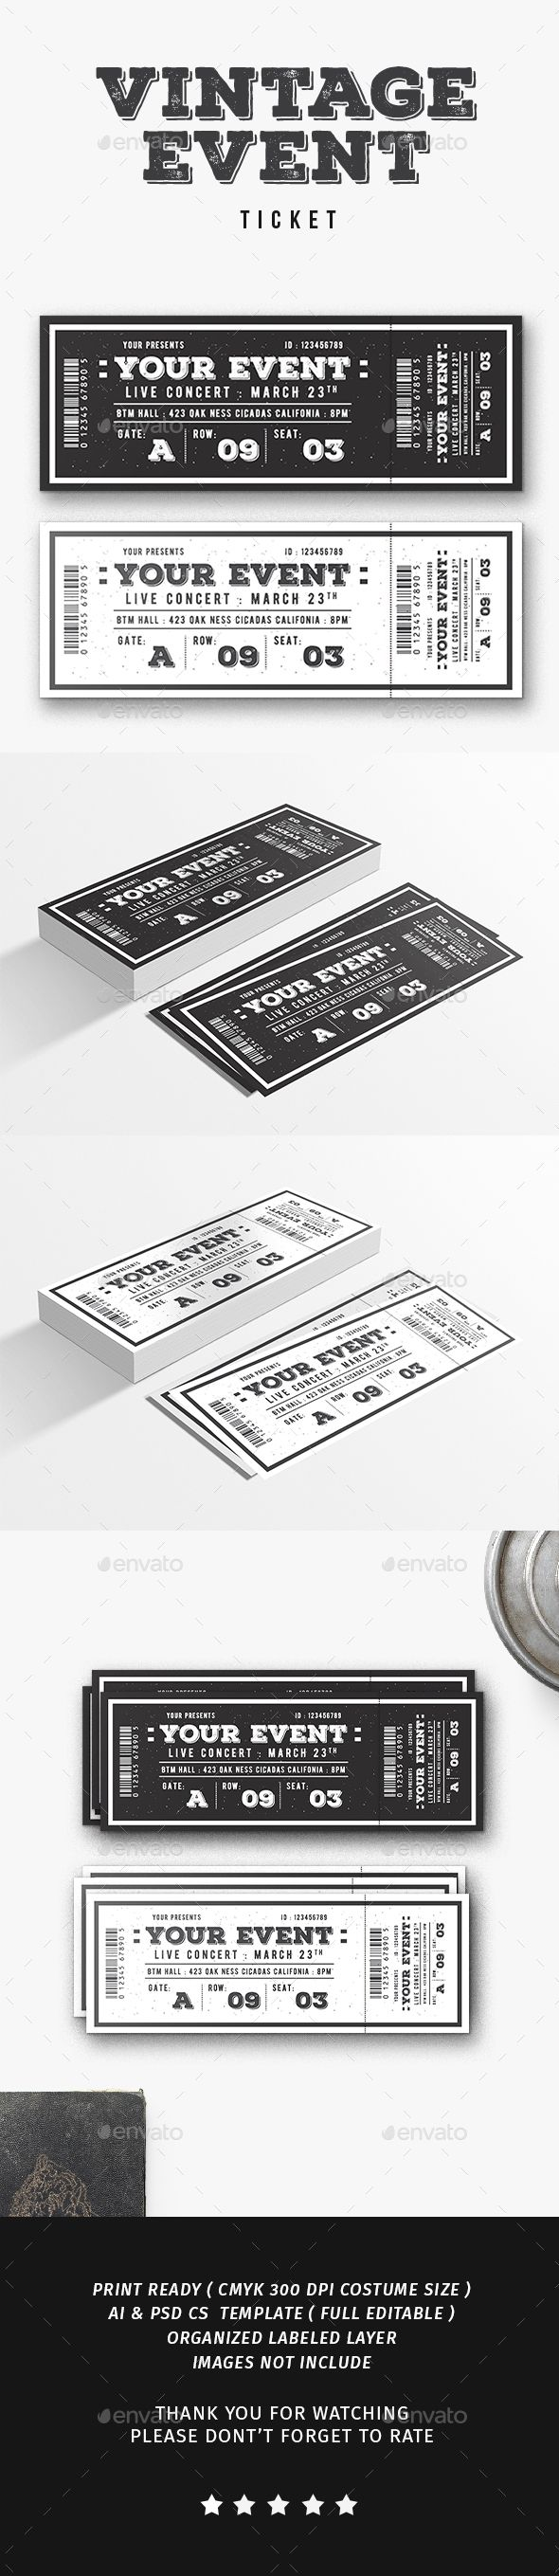 17 Best ideas about Event Tickets – Event Ticket Ideas